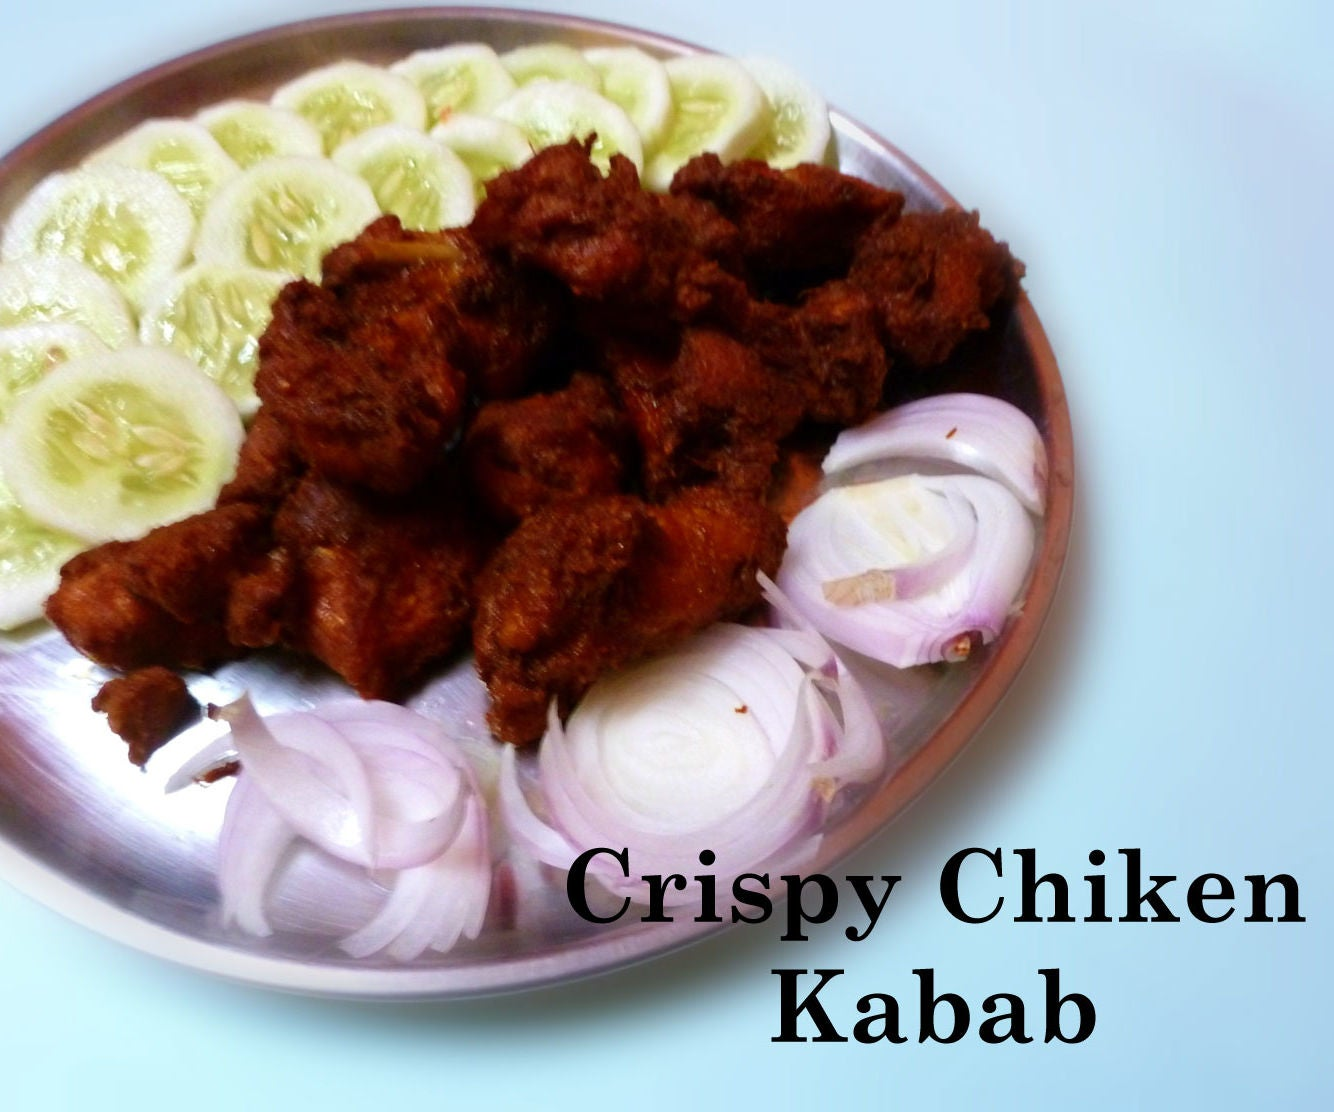 Crispy Chicken Kabab - Who's Hungry : 8 Steps (with Pictures) -  Instructables